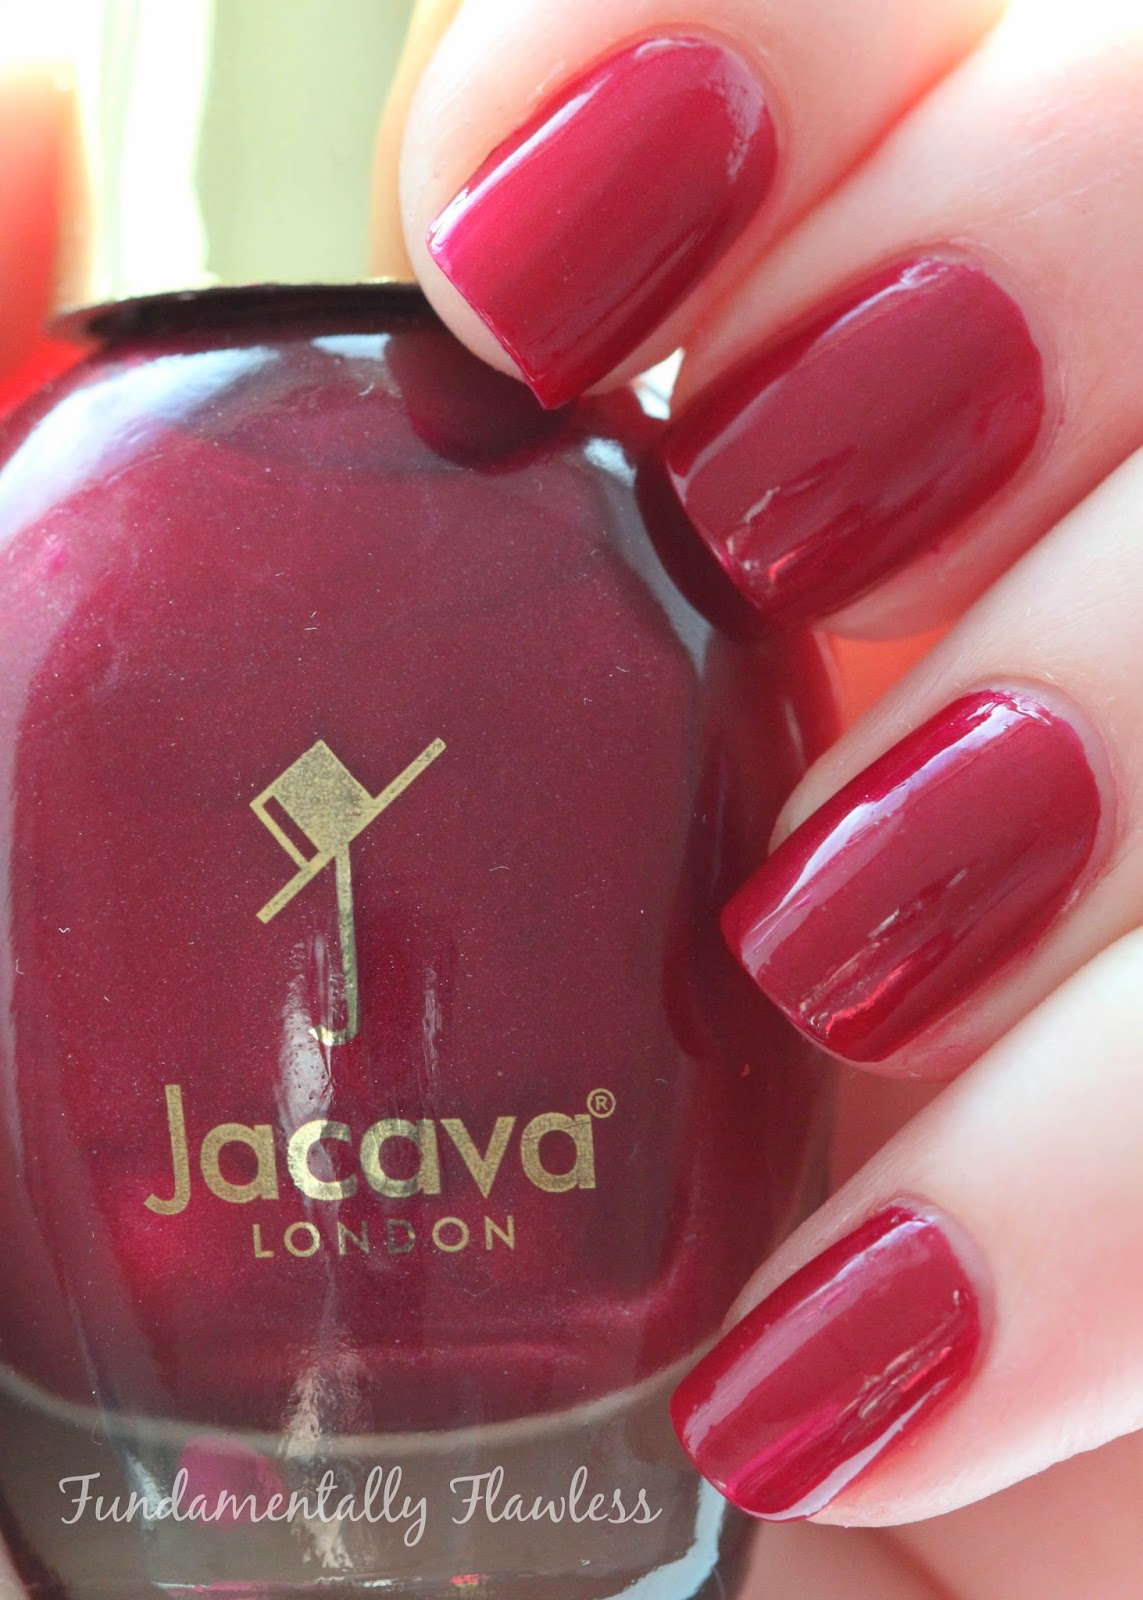 Jacava London Dance With Me swatch